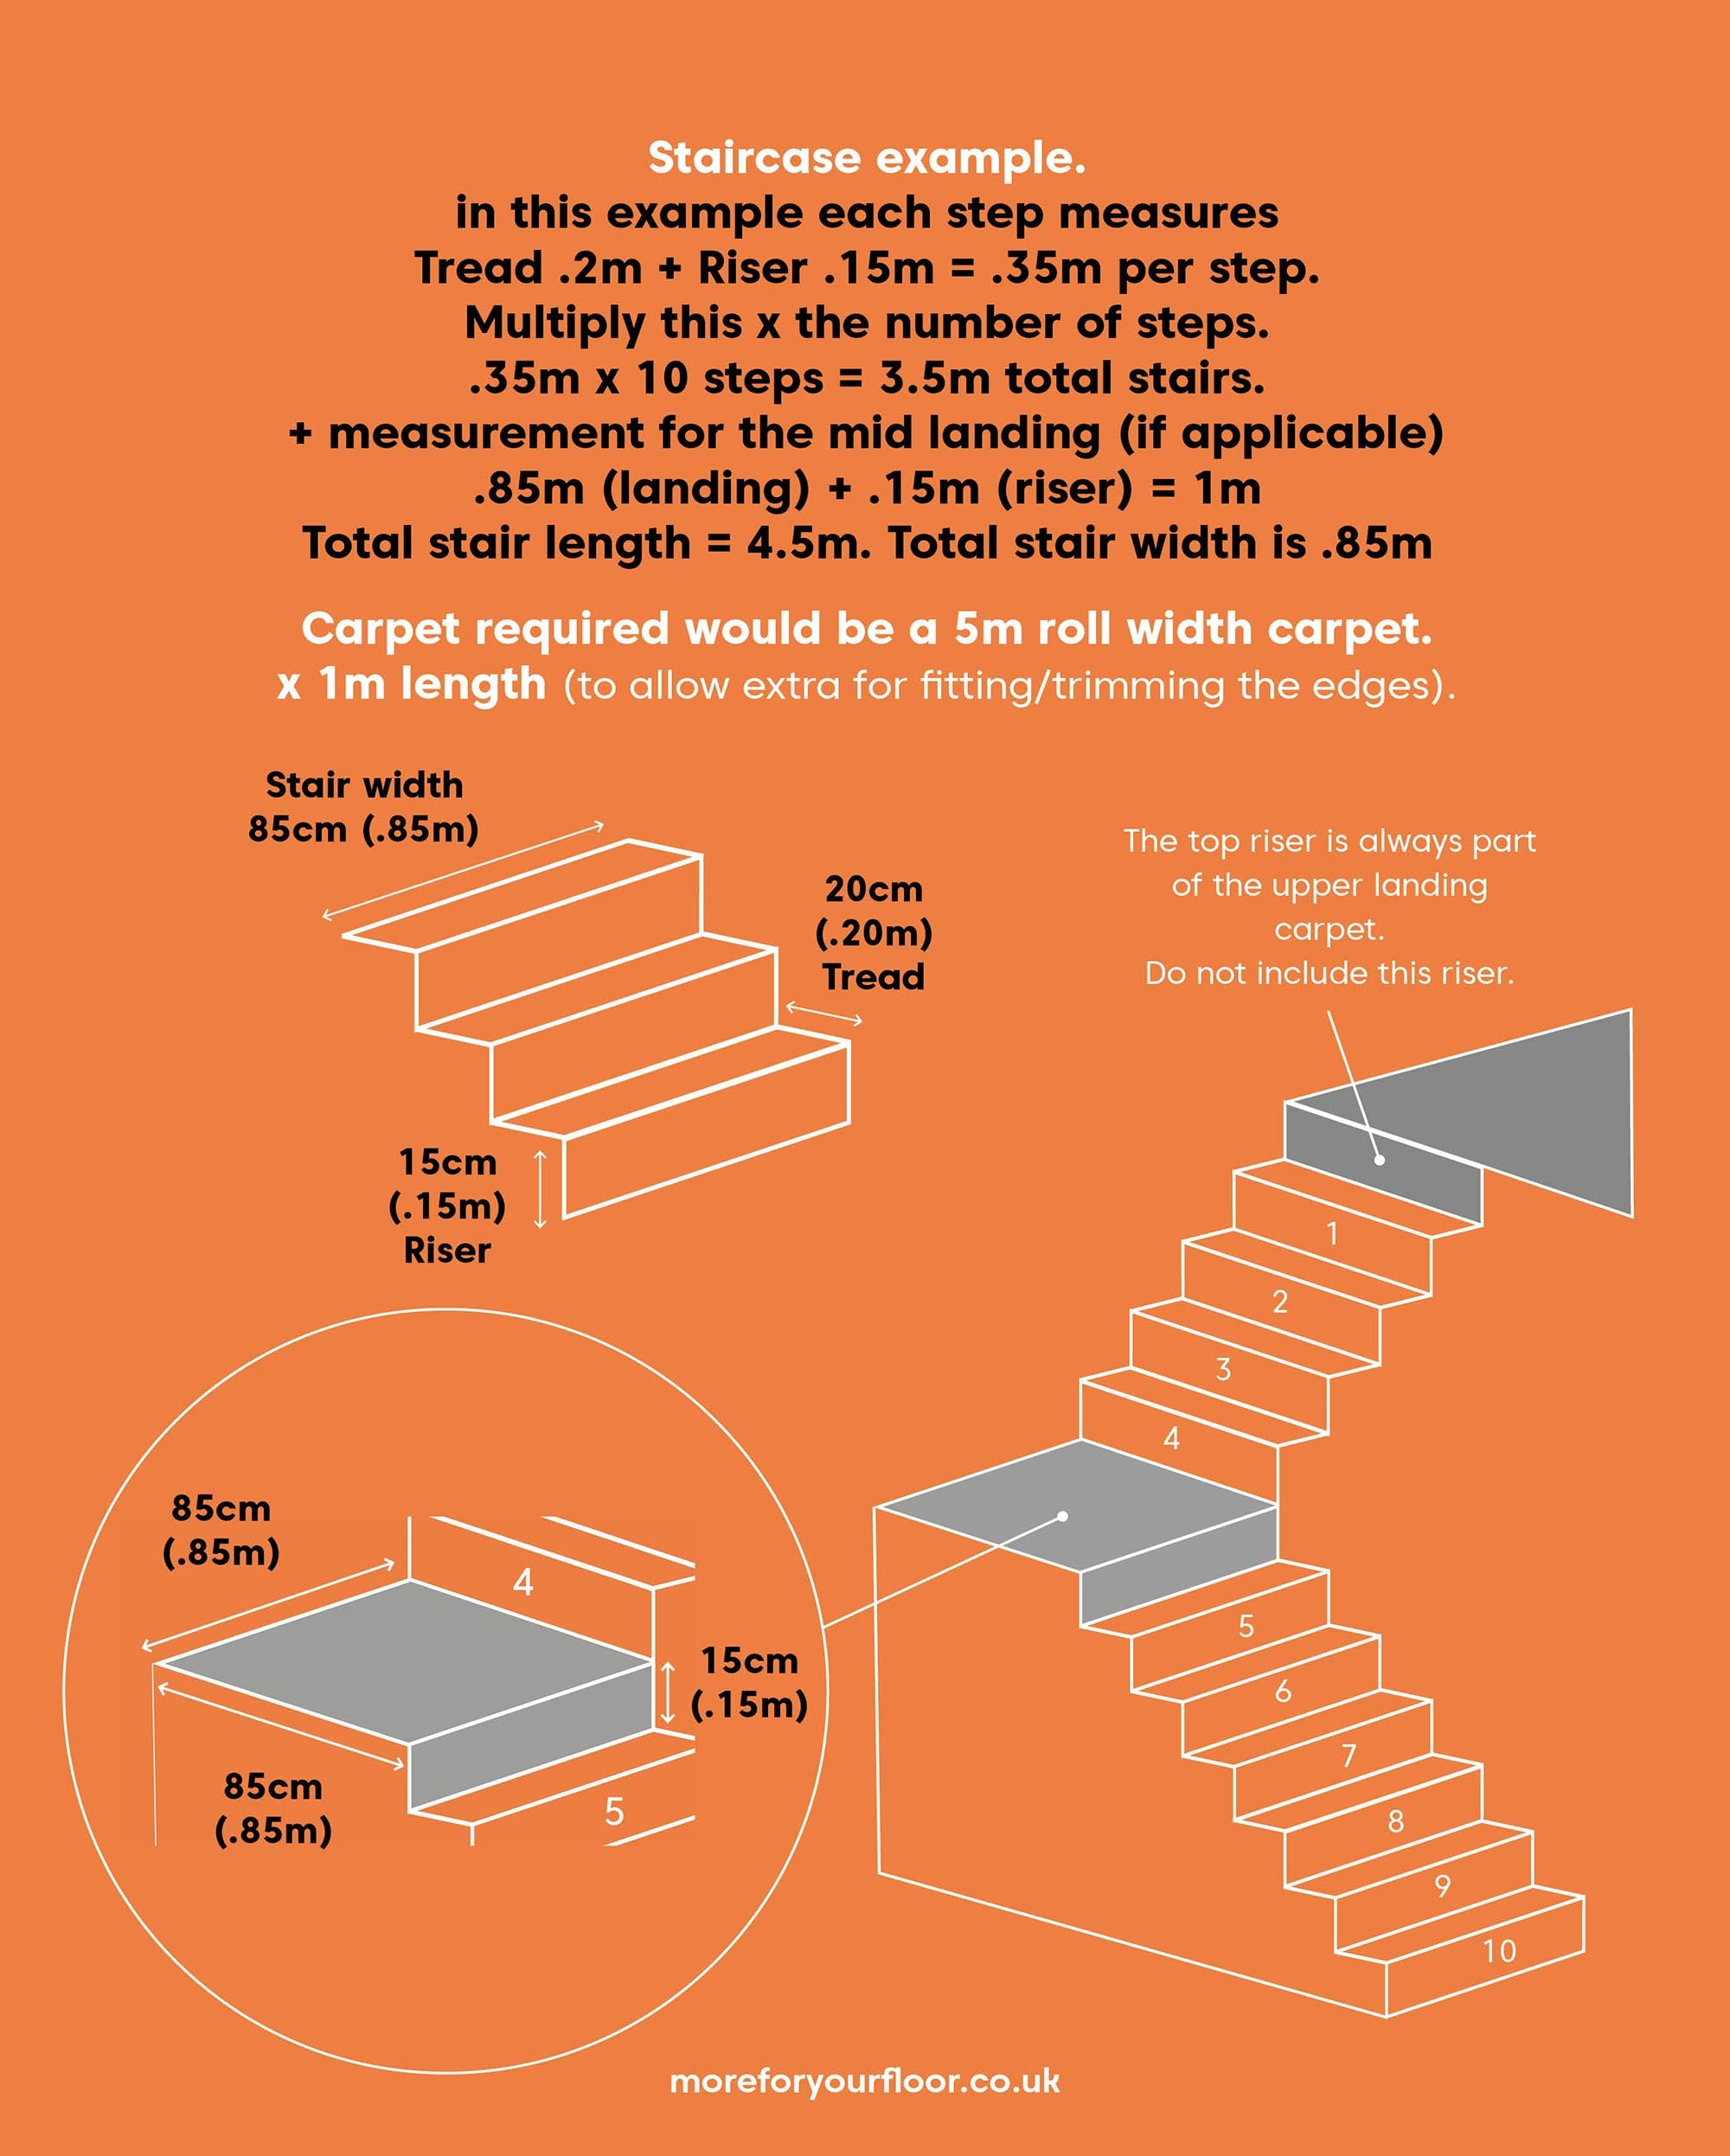 Diagram of an example stairway for measuring